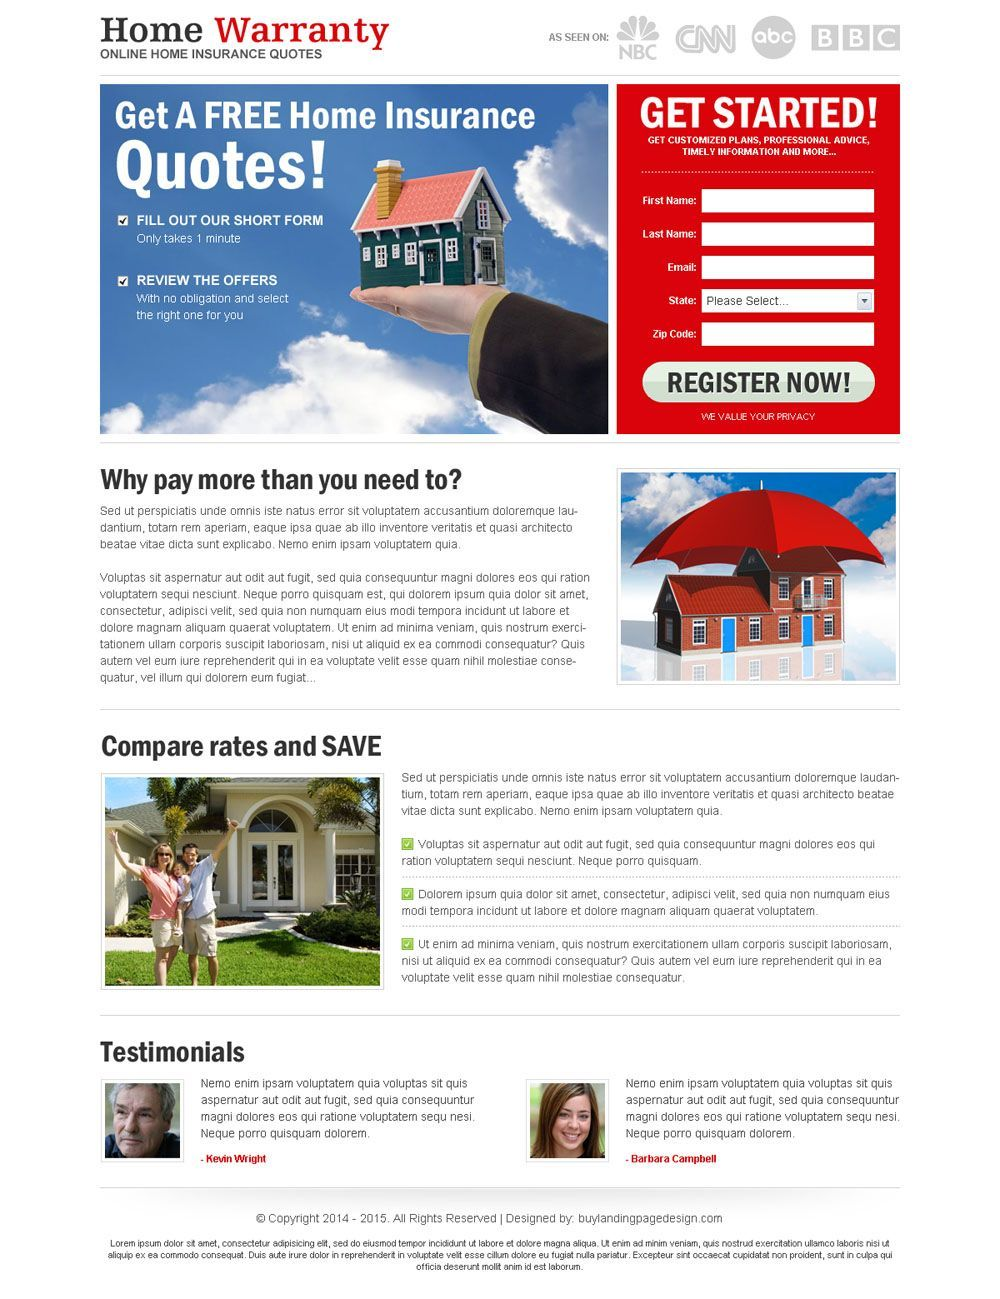 Home Insurance Quote Free Home Insurance Quote Lead Capture Most Converting Landing Page .